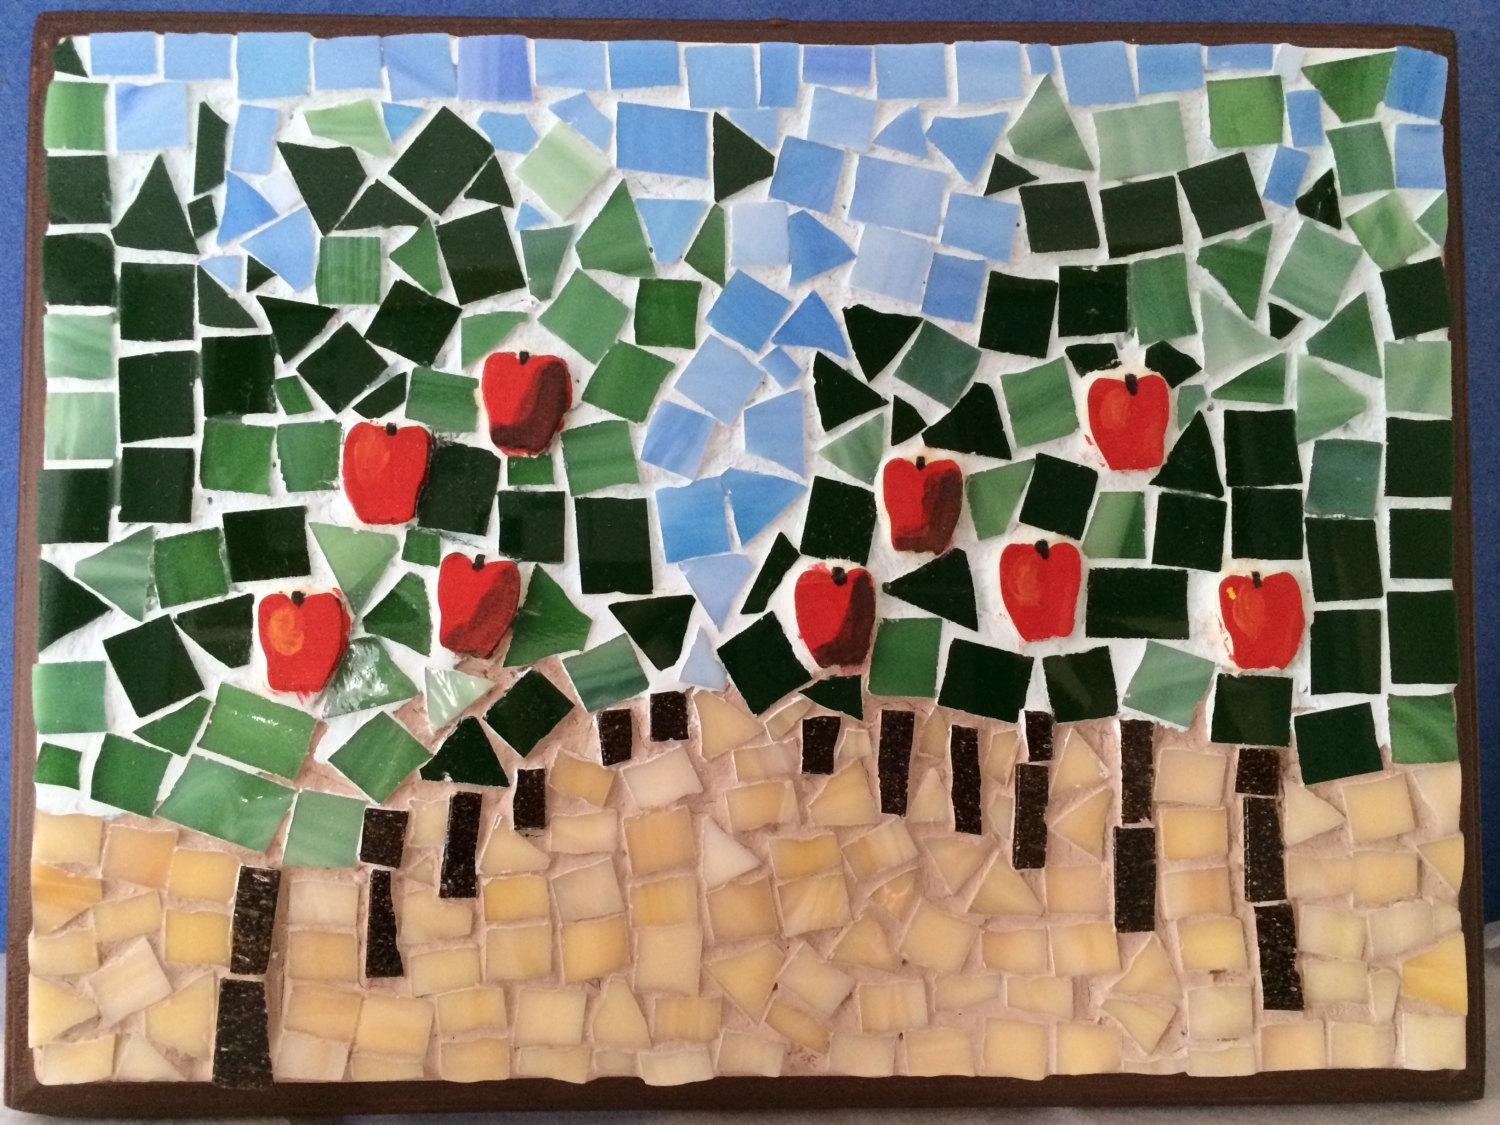 Apple Orchard, Diy Mosaic, Stress Relieving, Unique Gift, Wall Regarding Mosaic Wall Art Kits (Image 1 of 20)